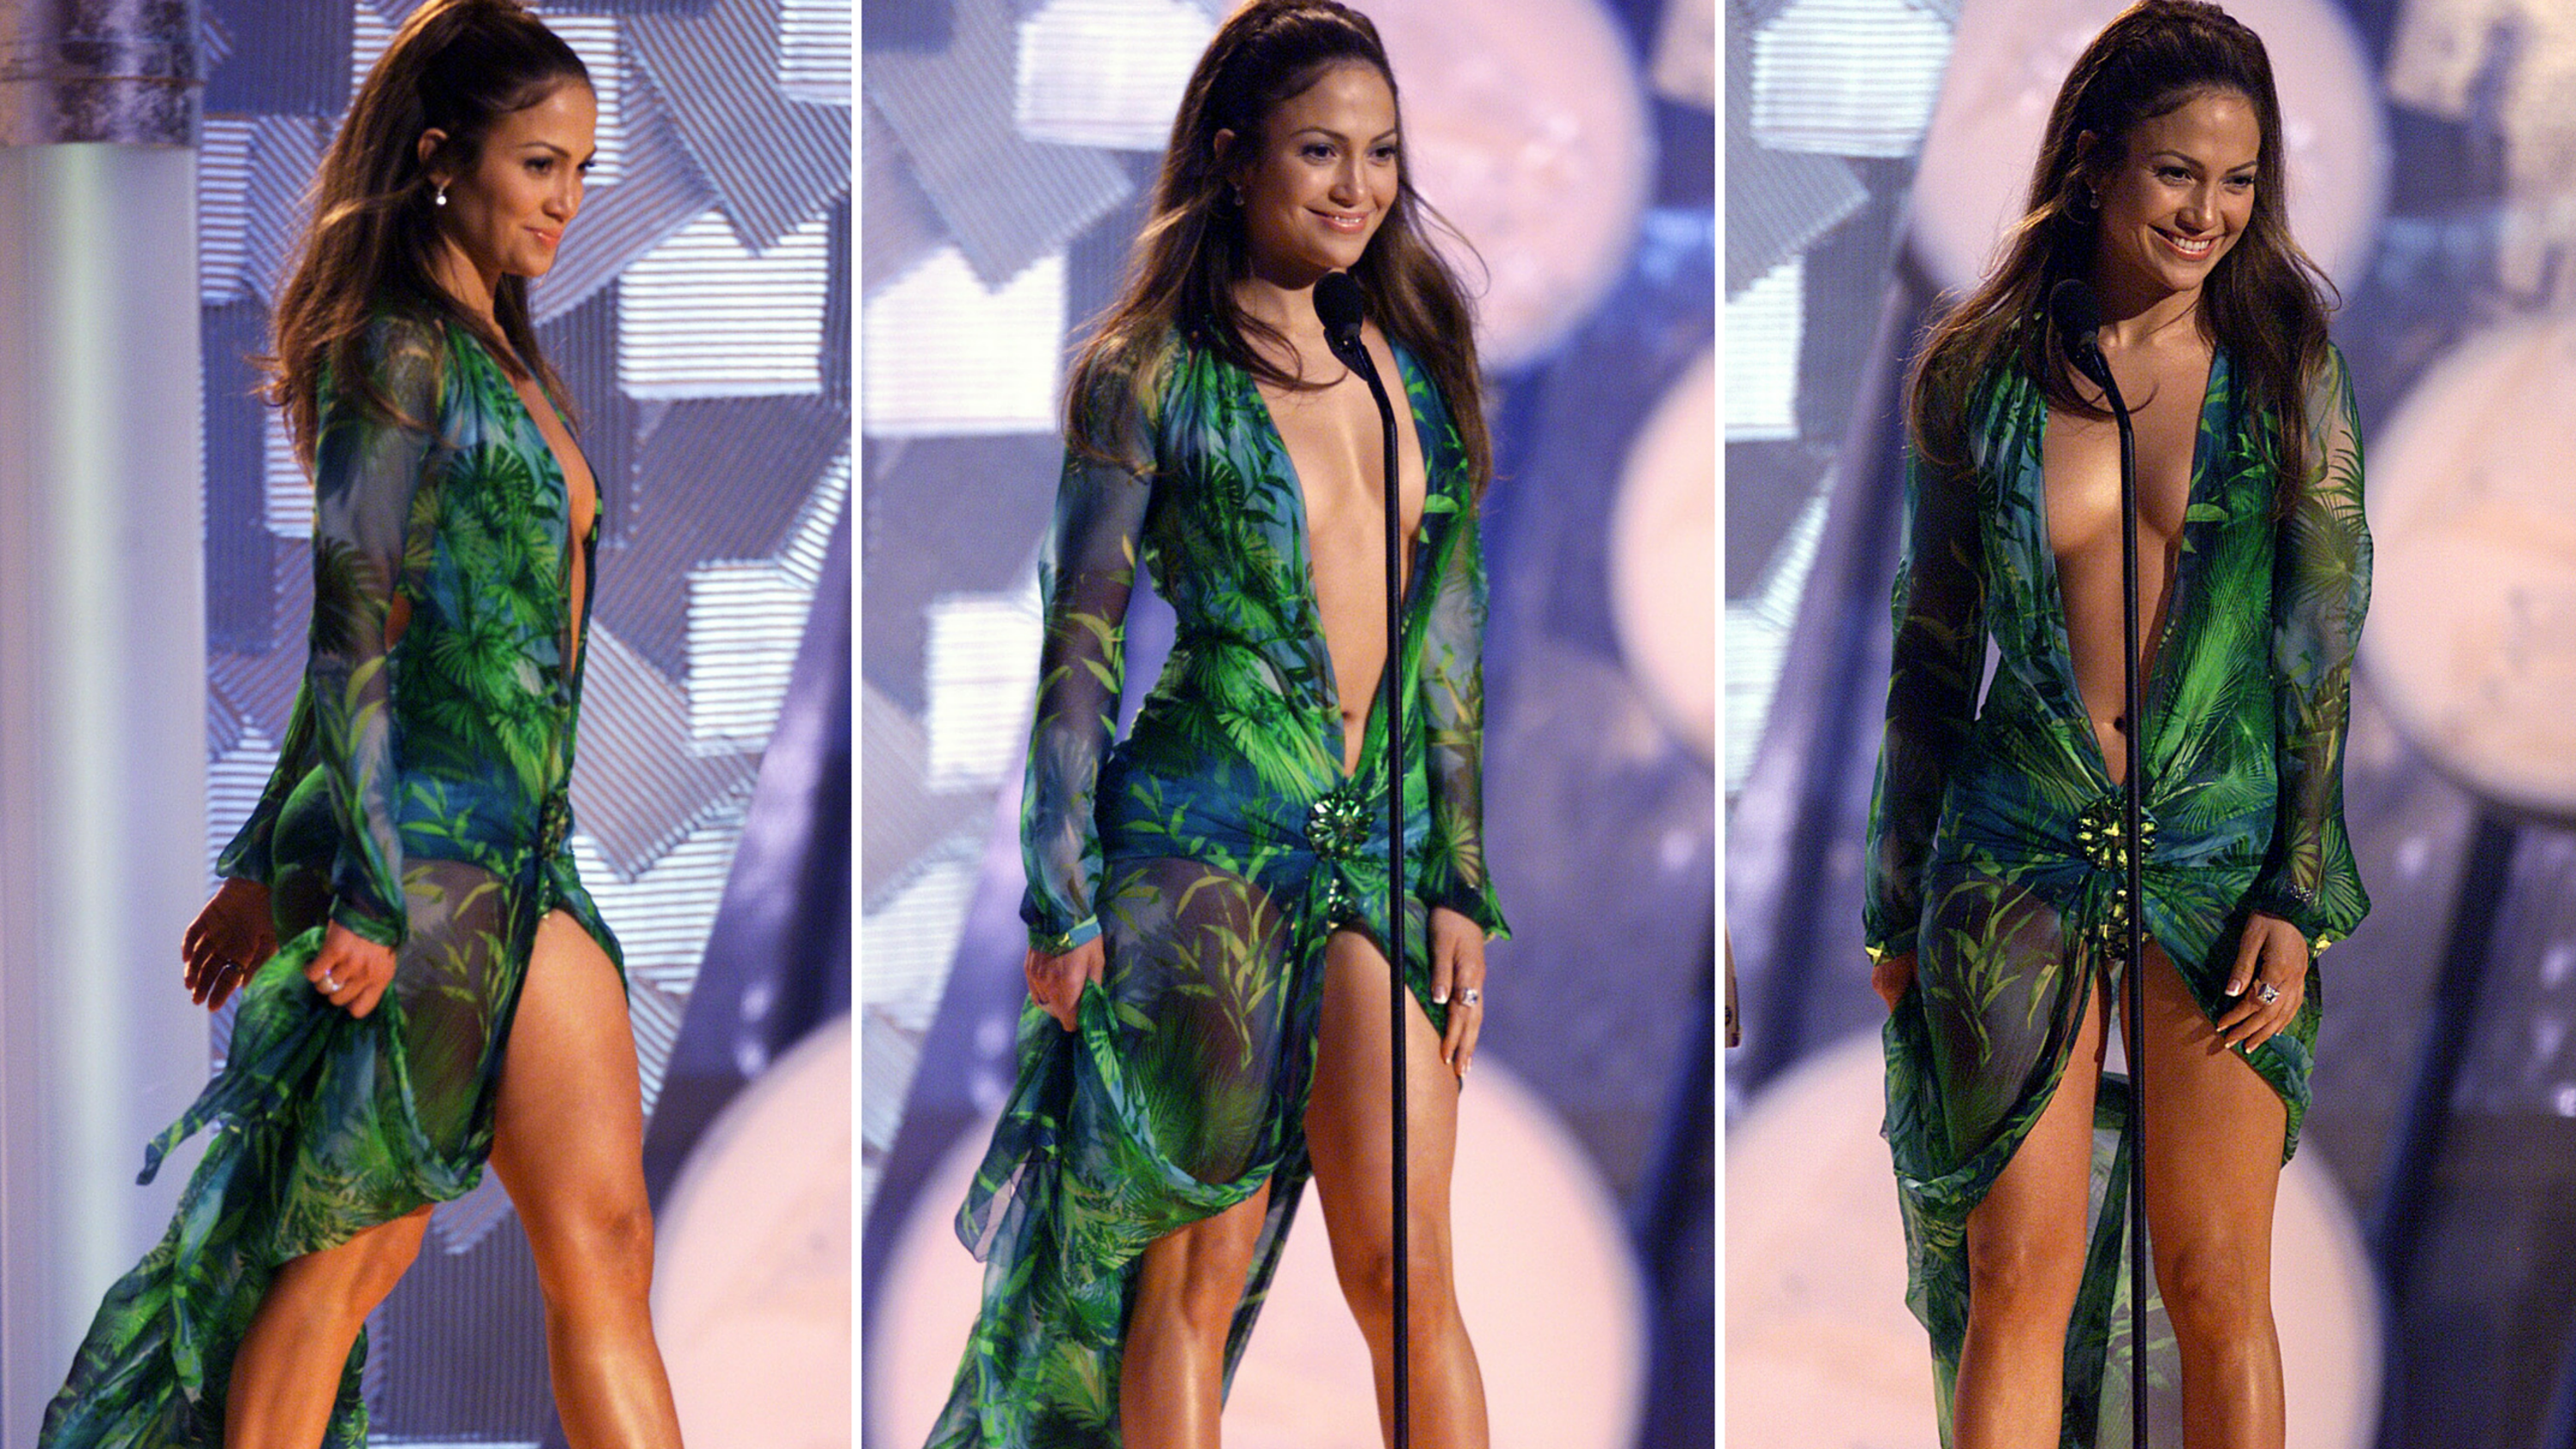 J Los Infamous Green Grammys Dress Is The Reason Google